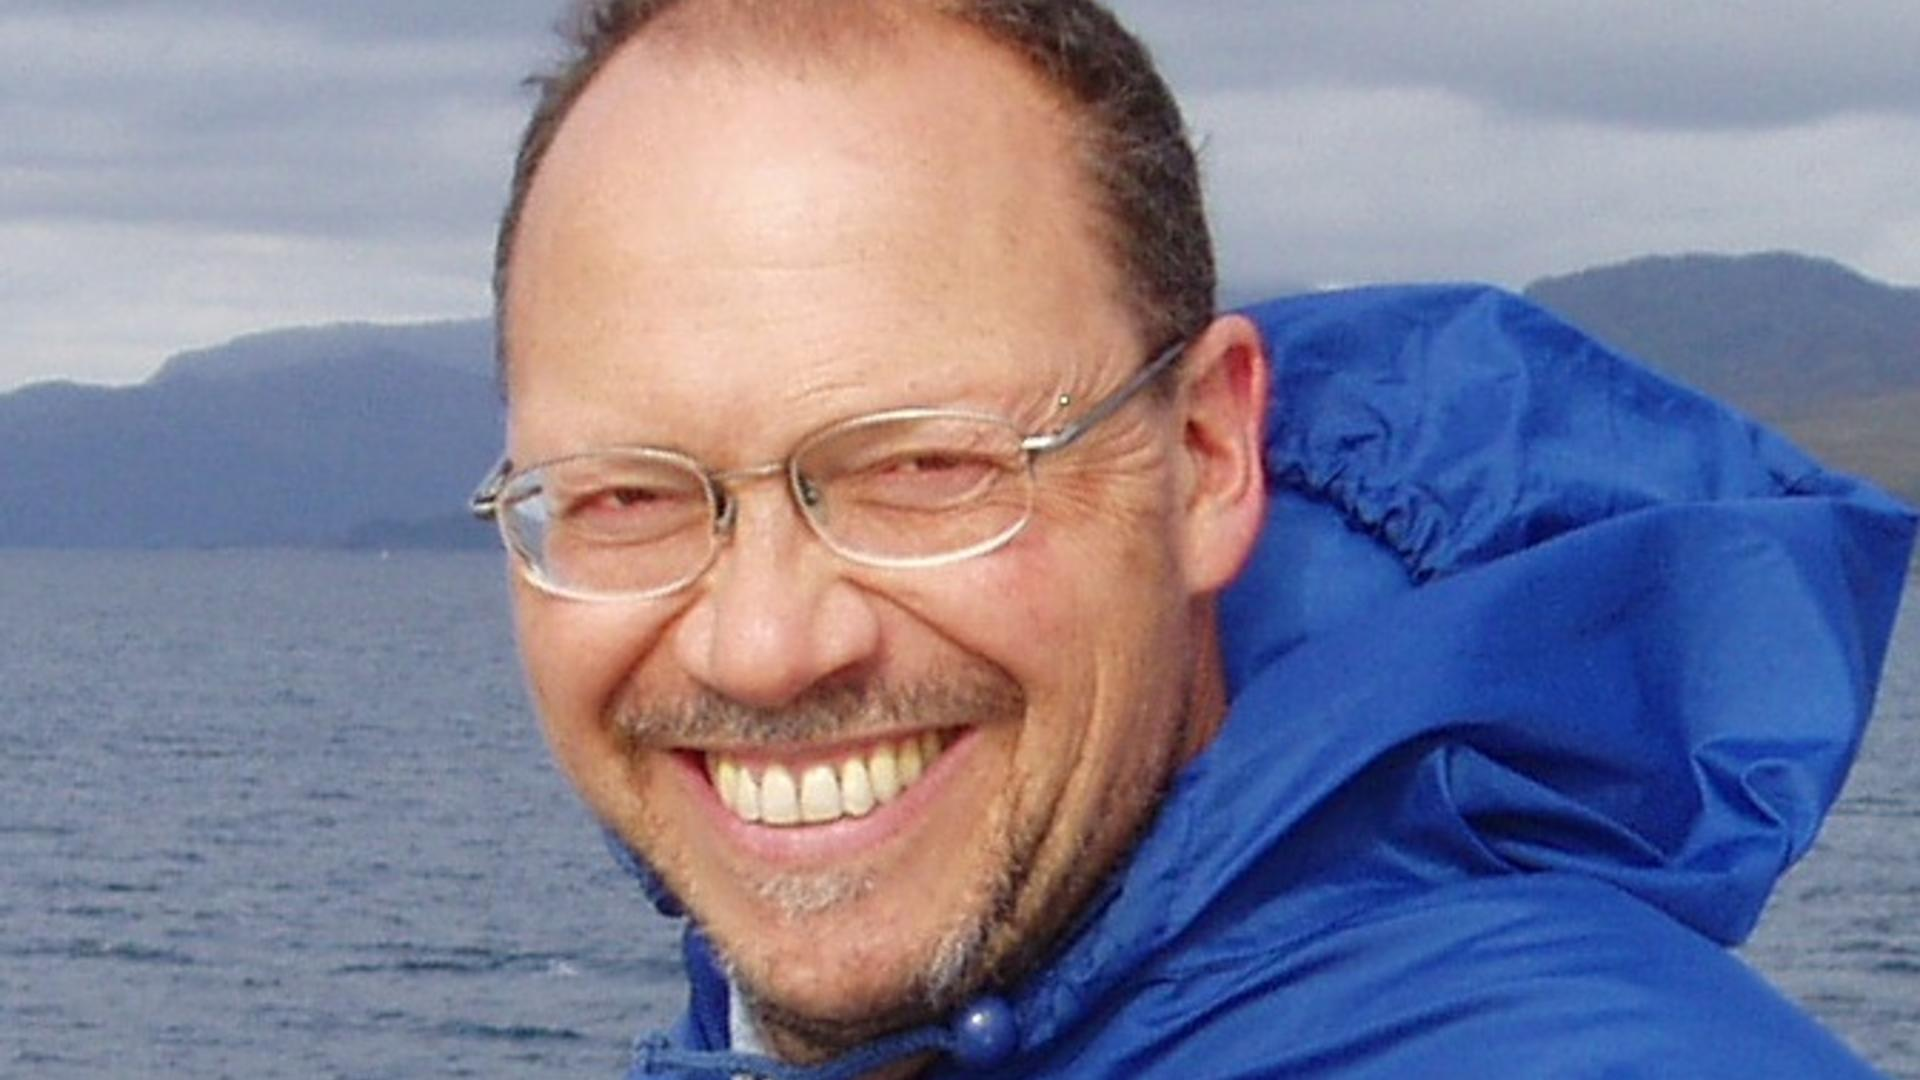 Professor Emanuele Trucco smiling. Wearing a blue jacket with the sea behind him